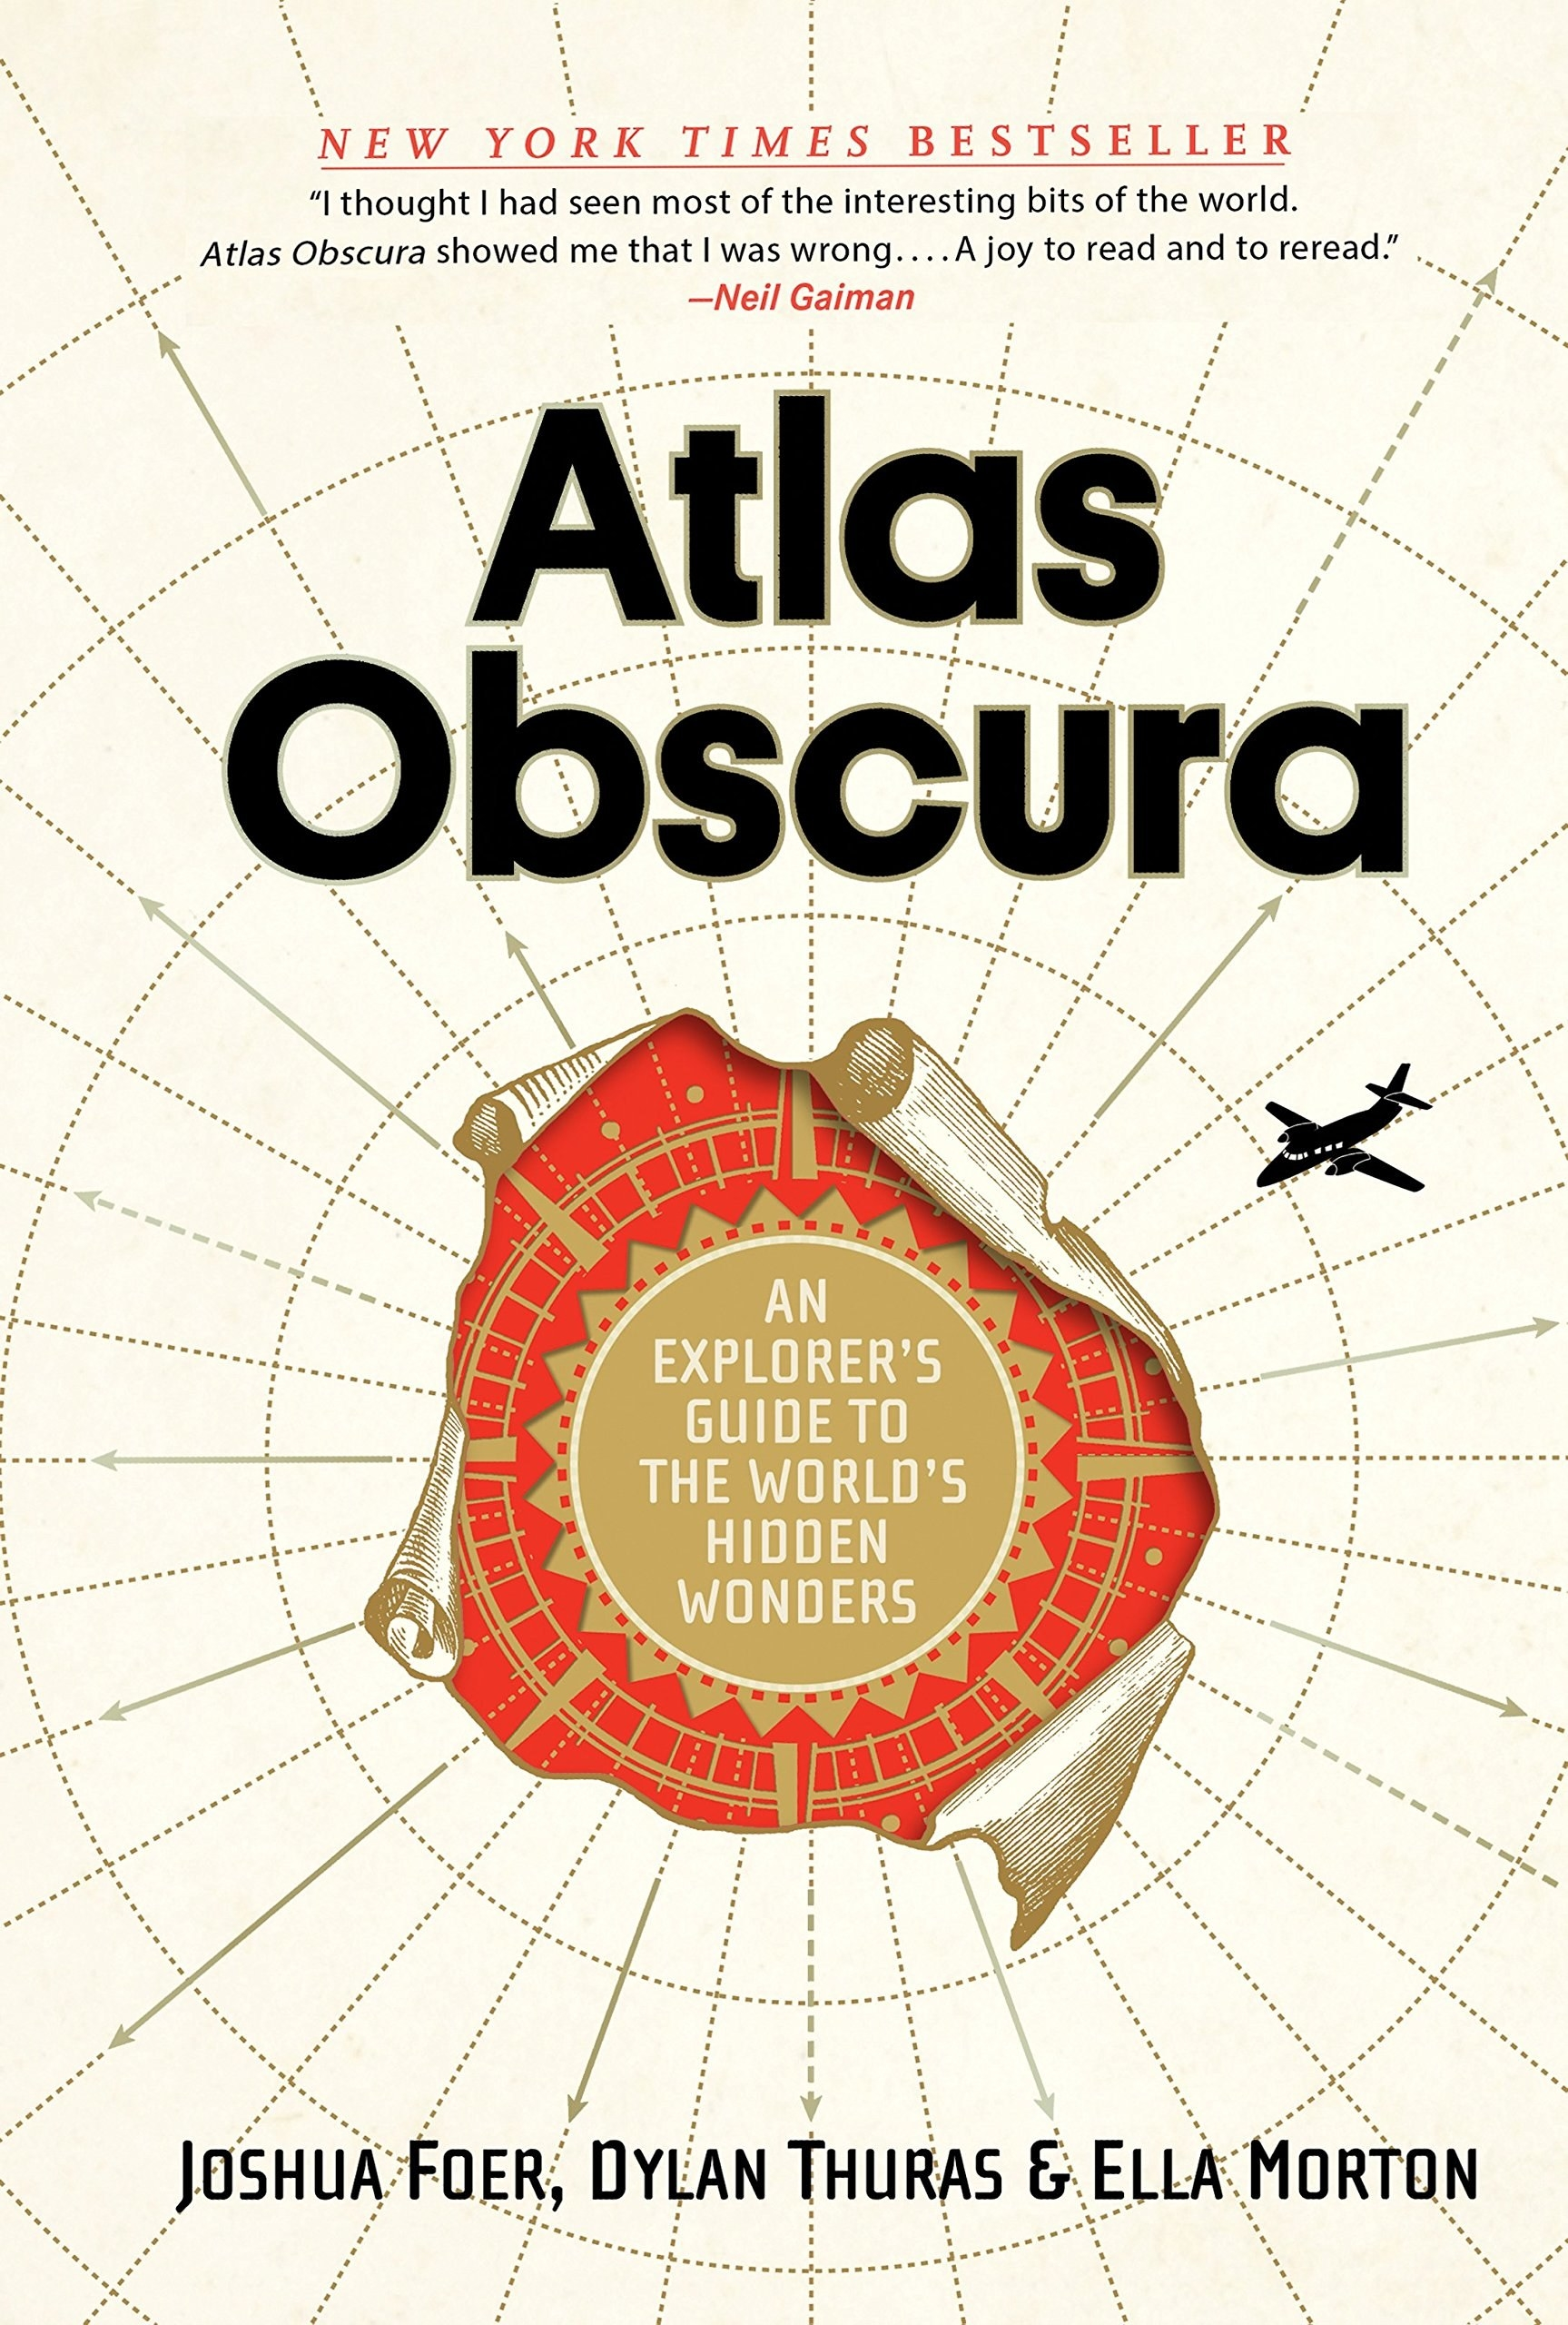 Cover page of Atlas Obscura book